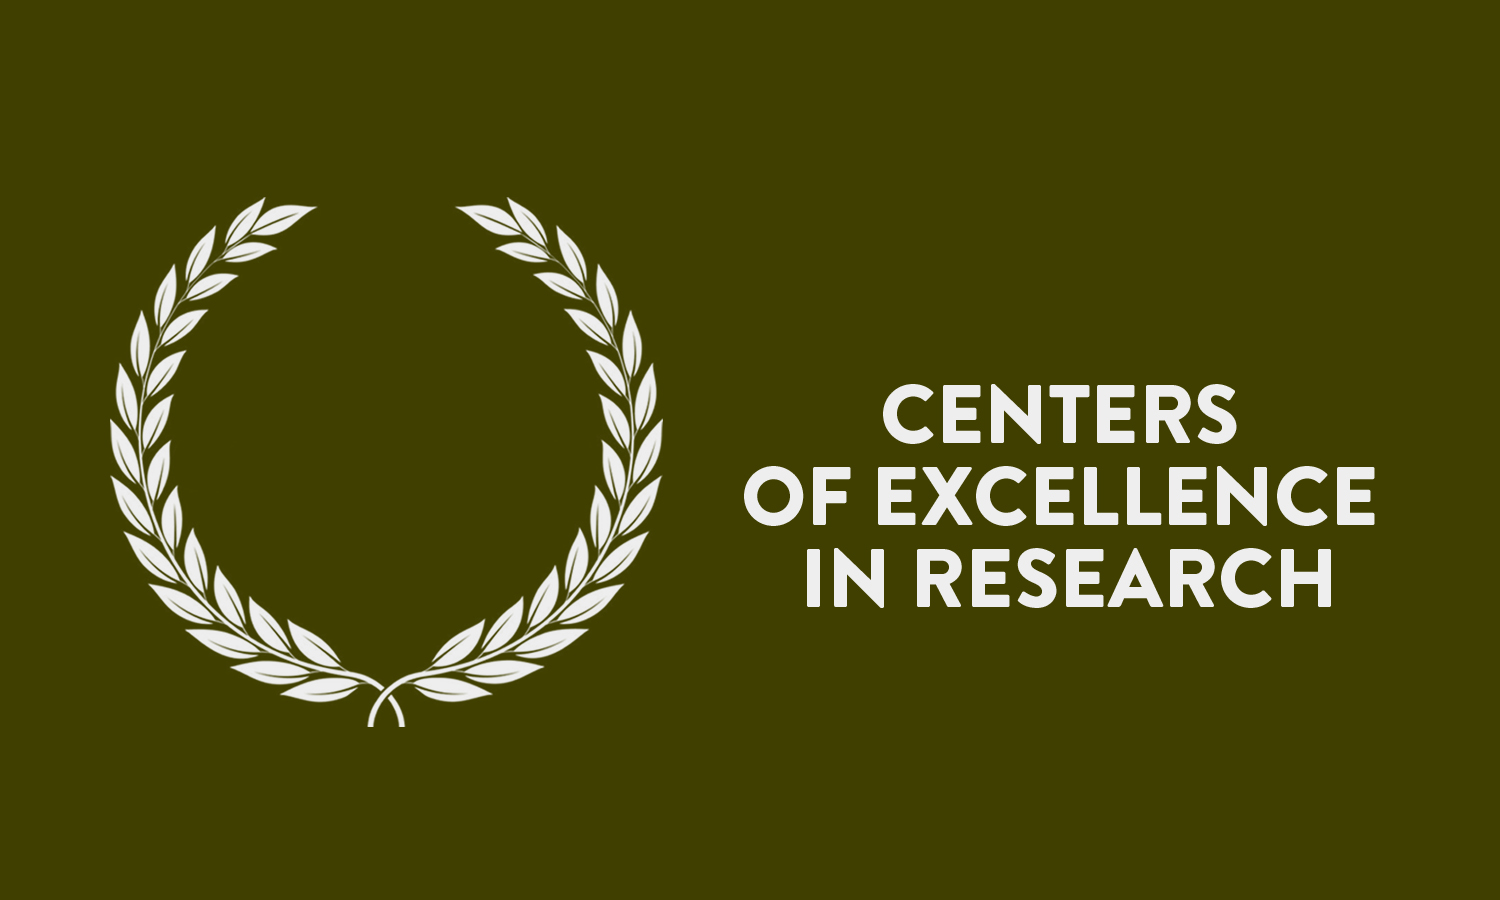 Centers of Excellence in Research